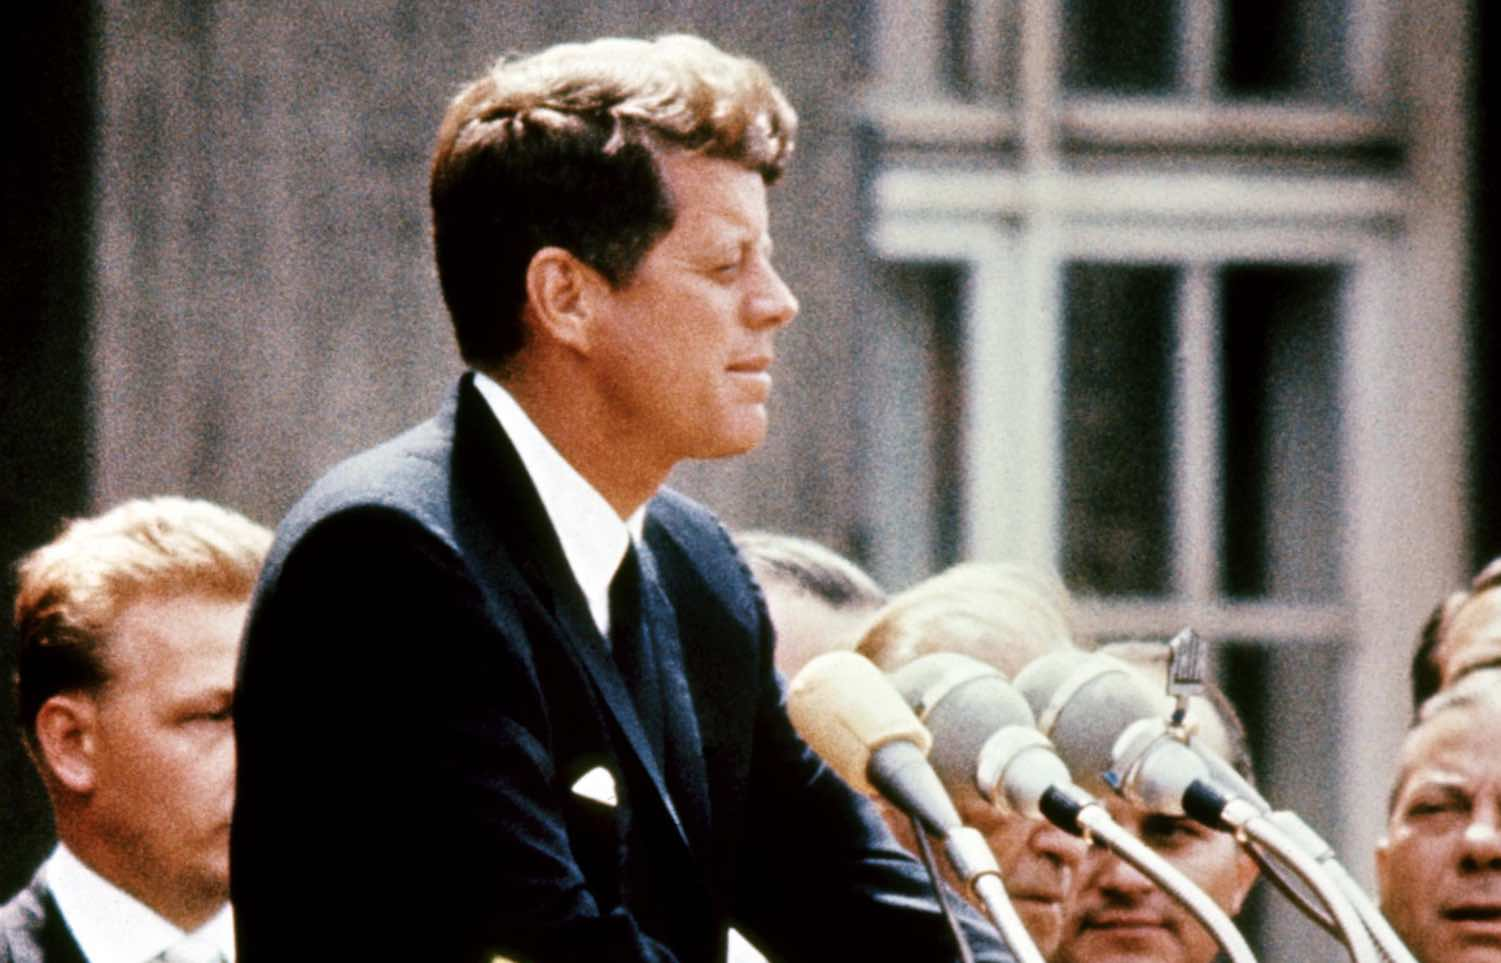 Kennedy's 'lost' speech brought to life 54 years after his death